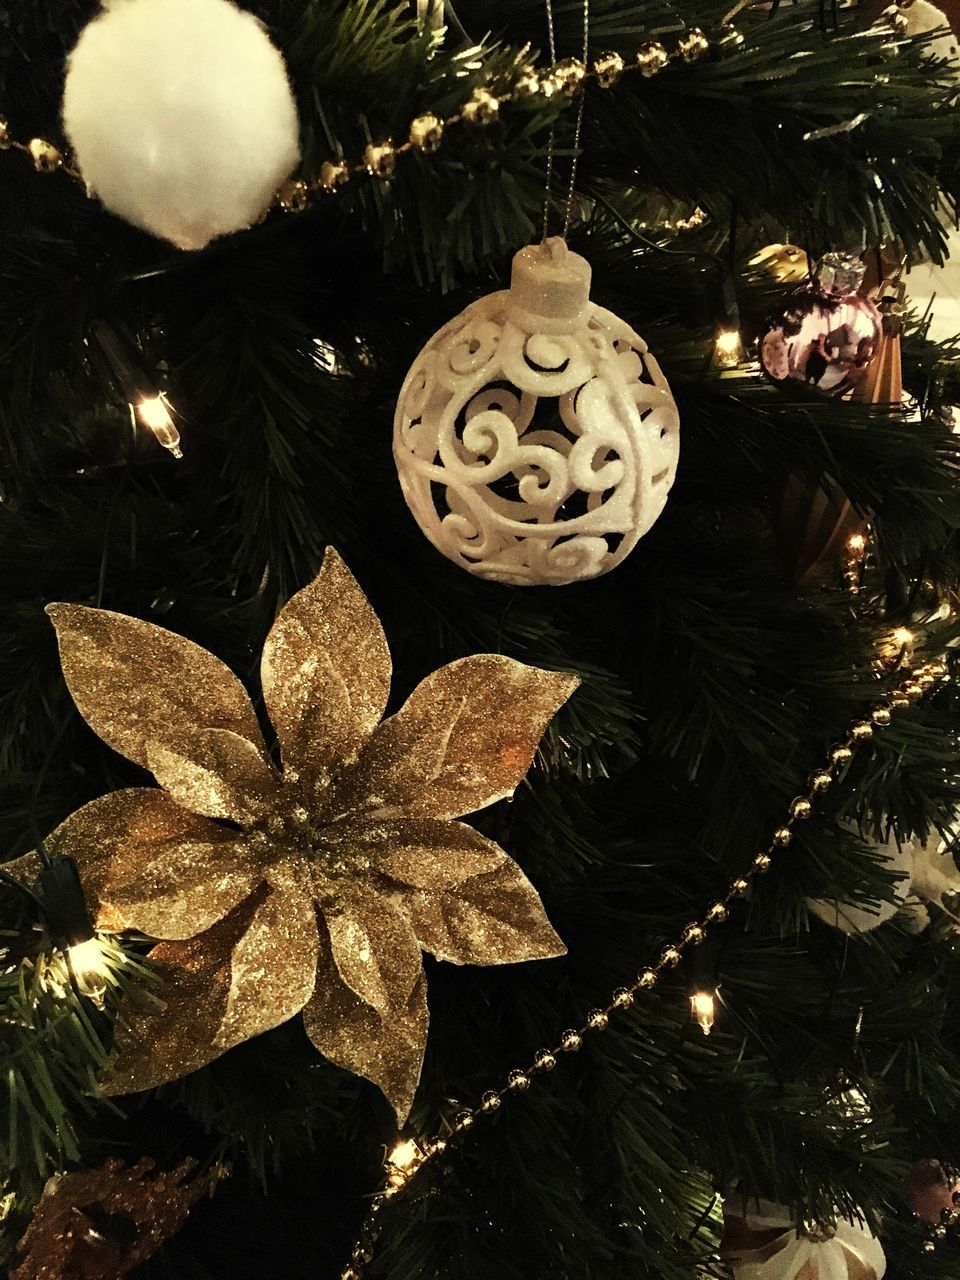 VIEW OF CHRISTMAS ORNAMENTS